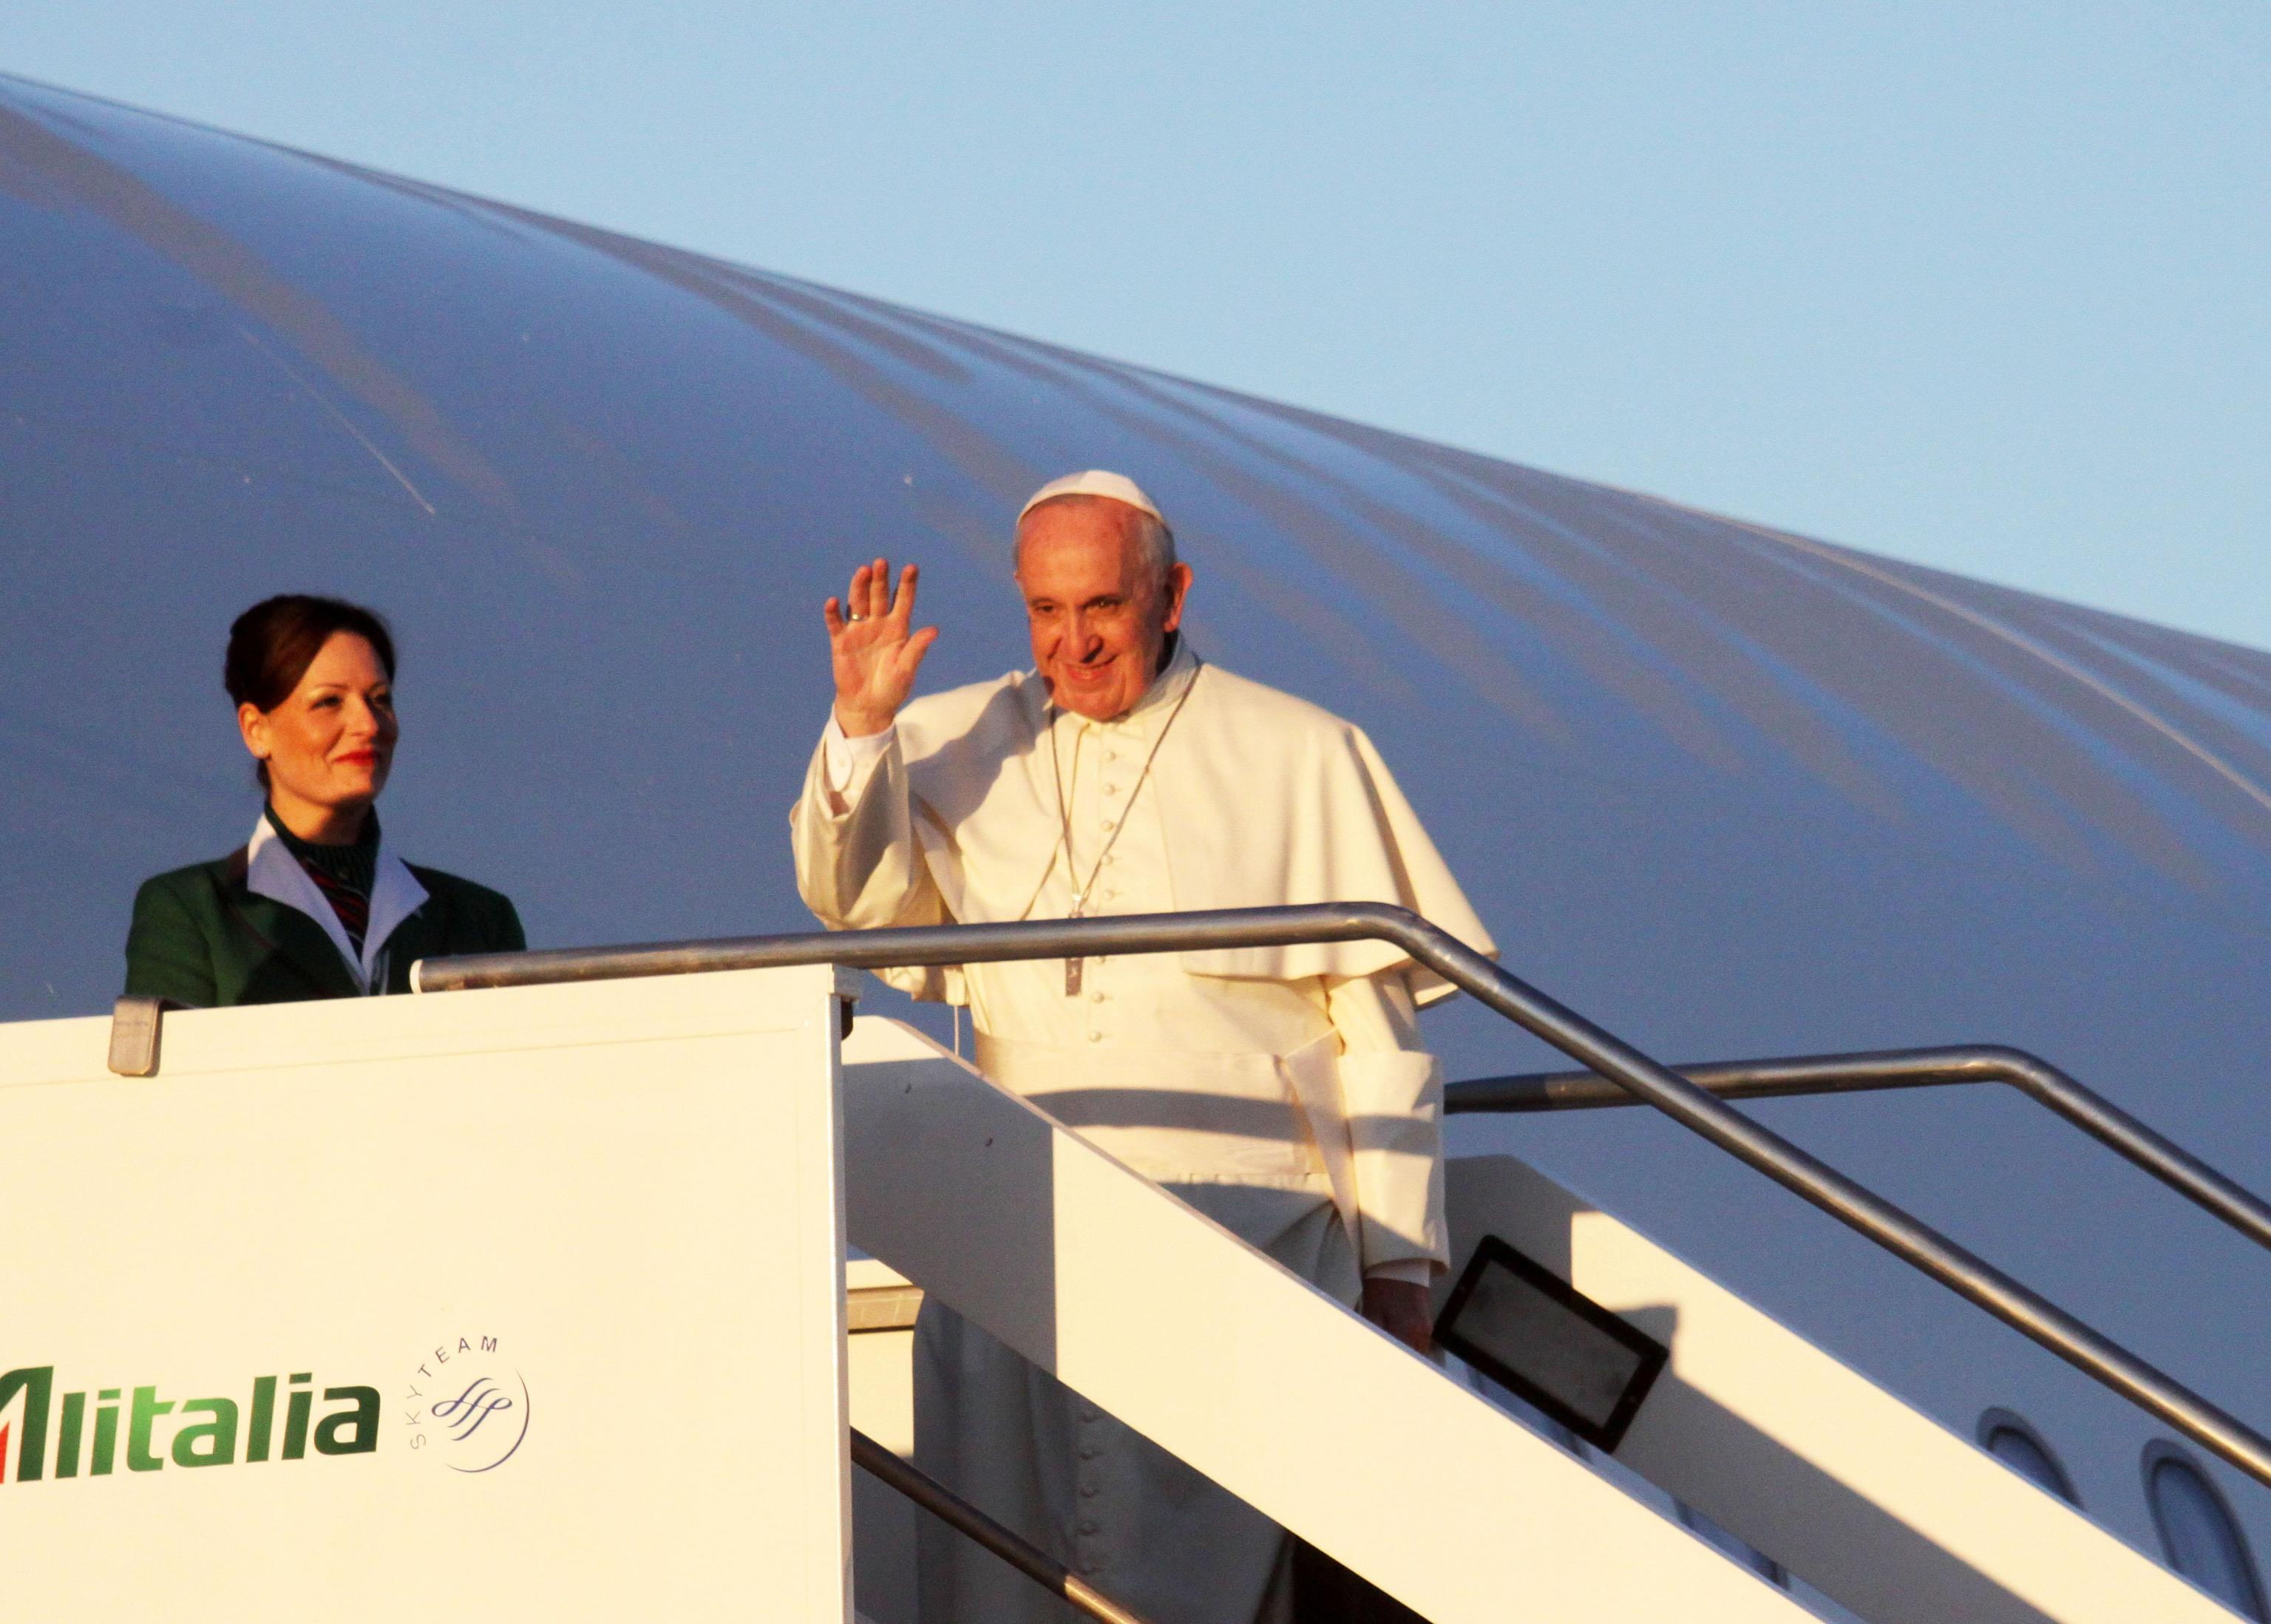 Pope Francis boards an Alitalia airplane at Rome's Fiumicino International Airport